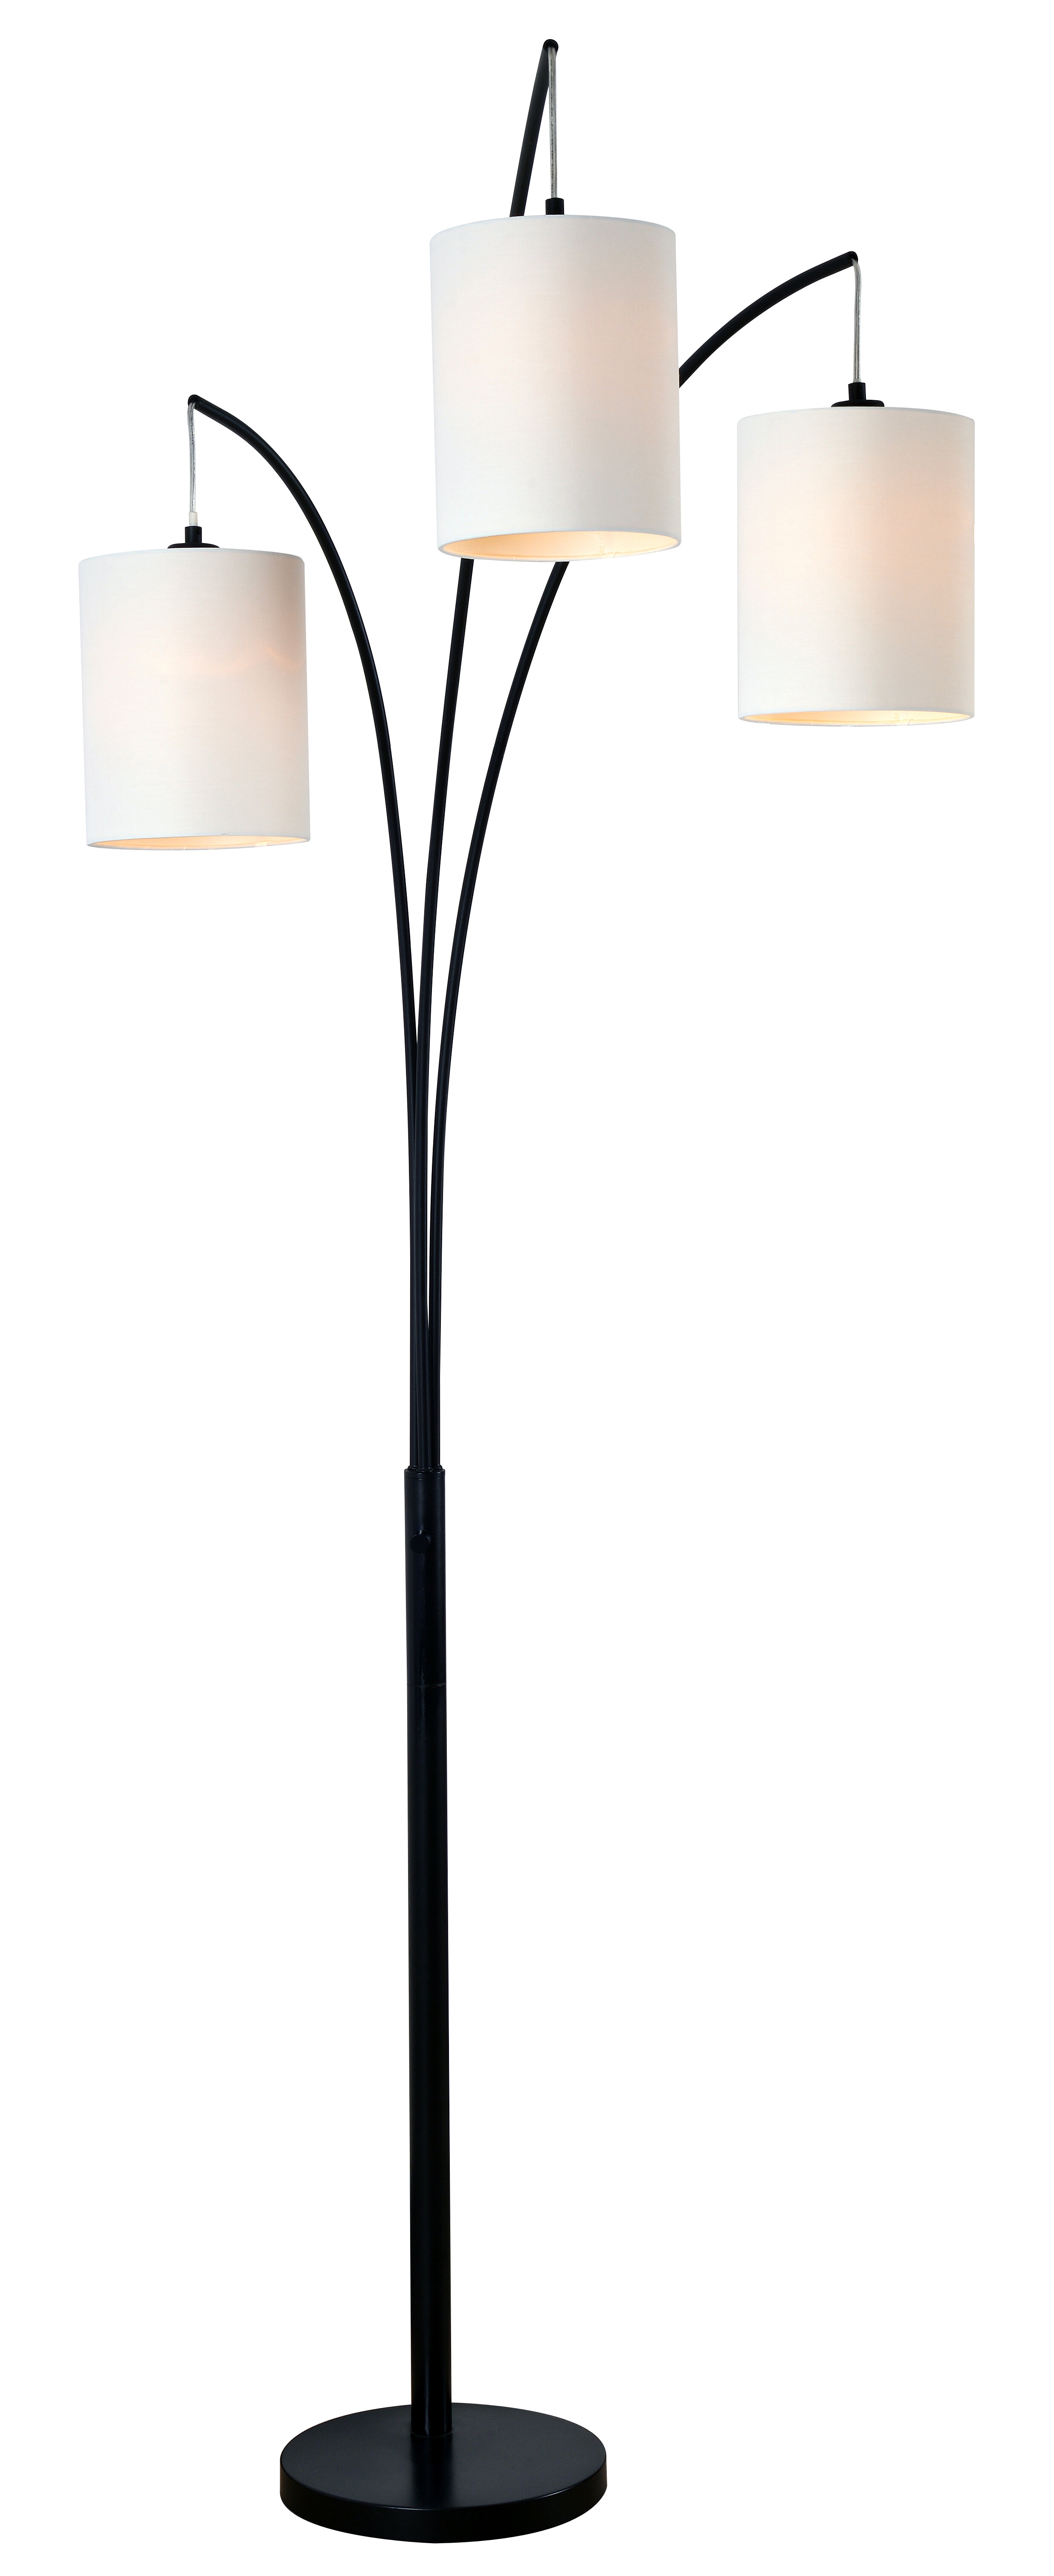 Aldora 83 5 Tree Floor Lamp Reviews